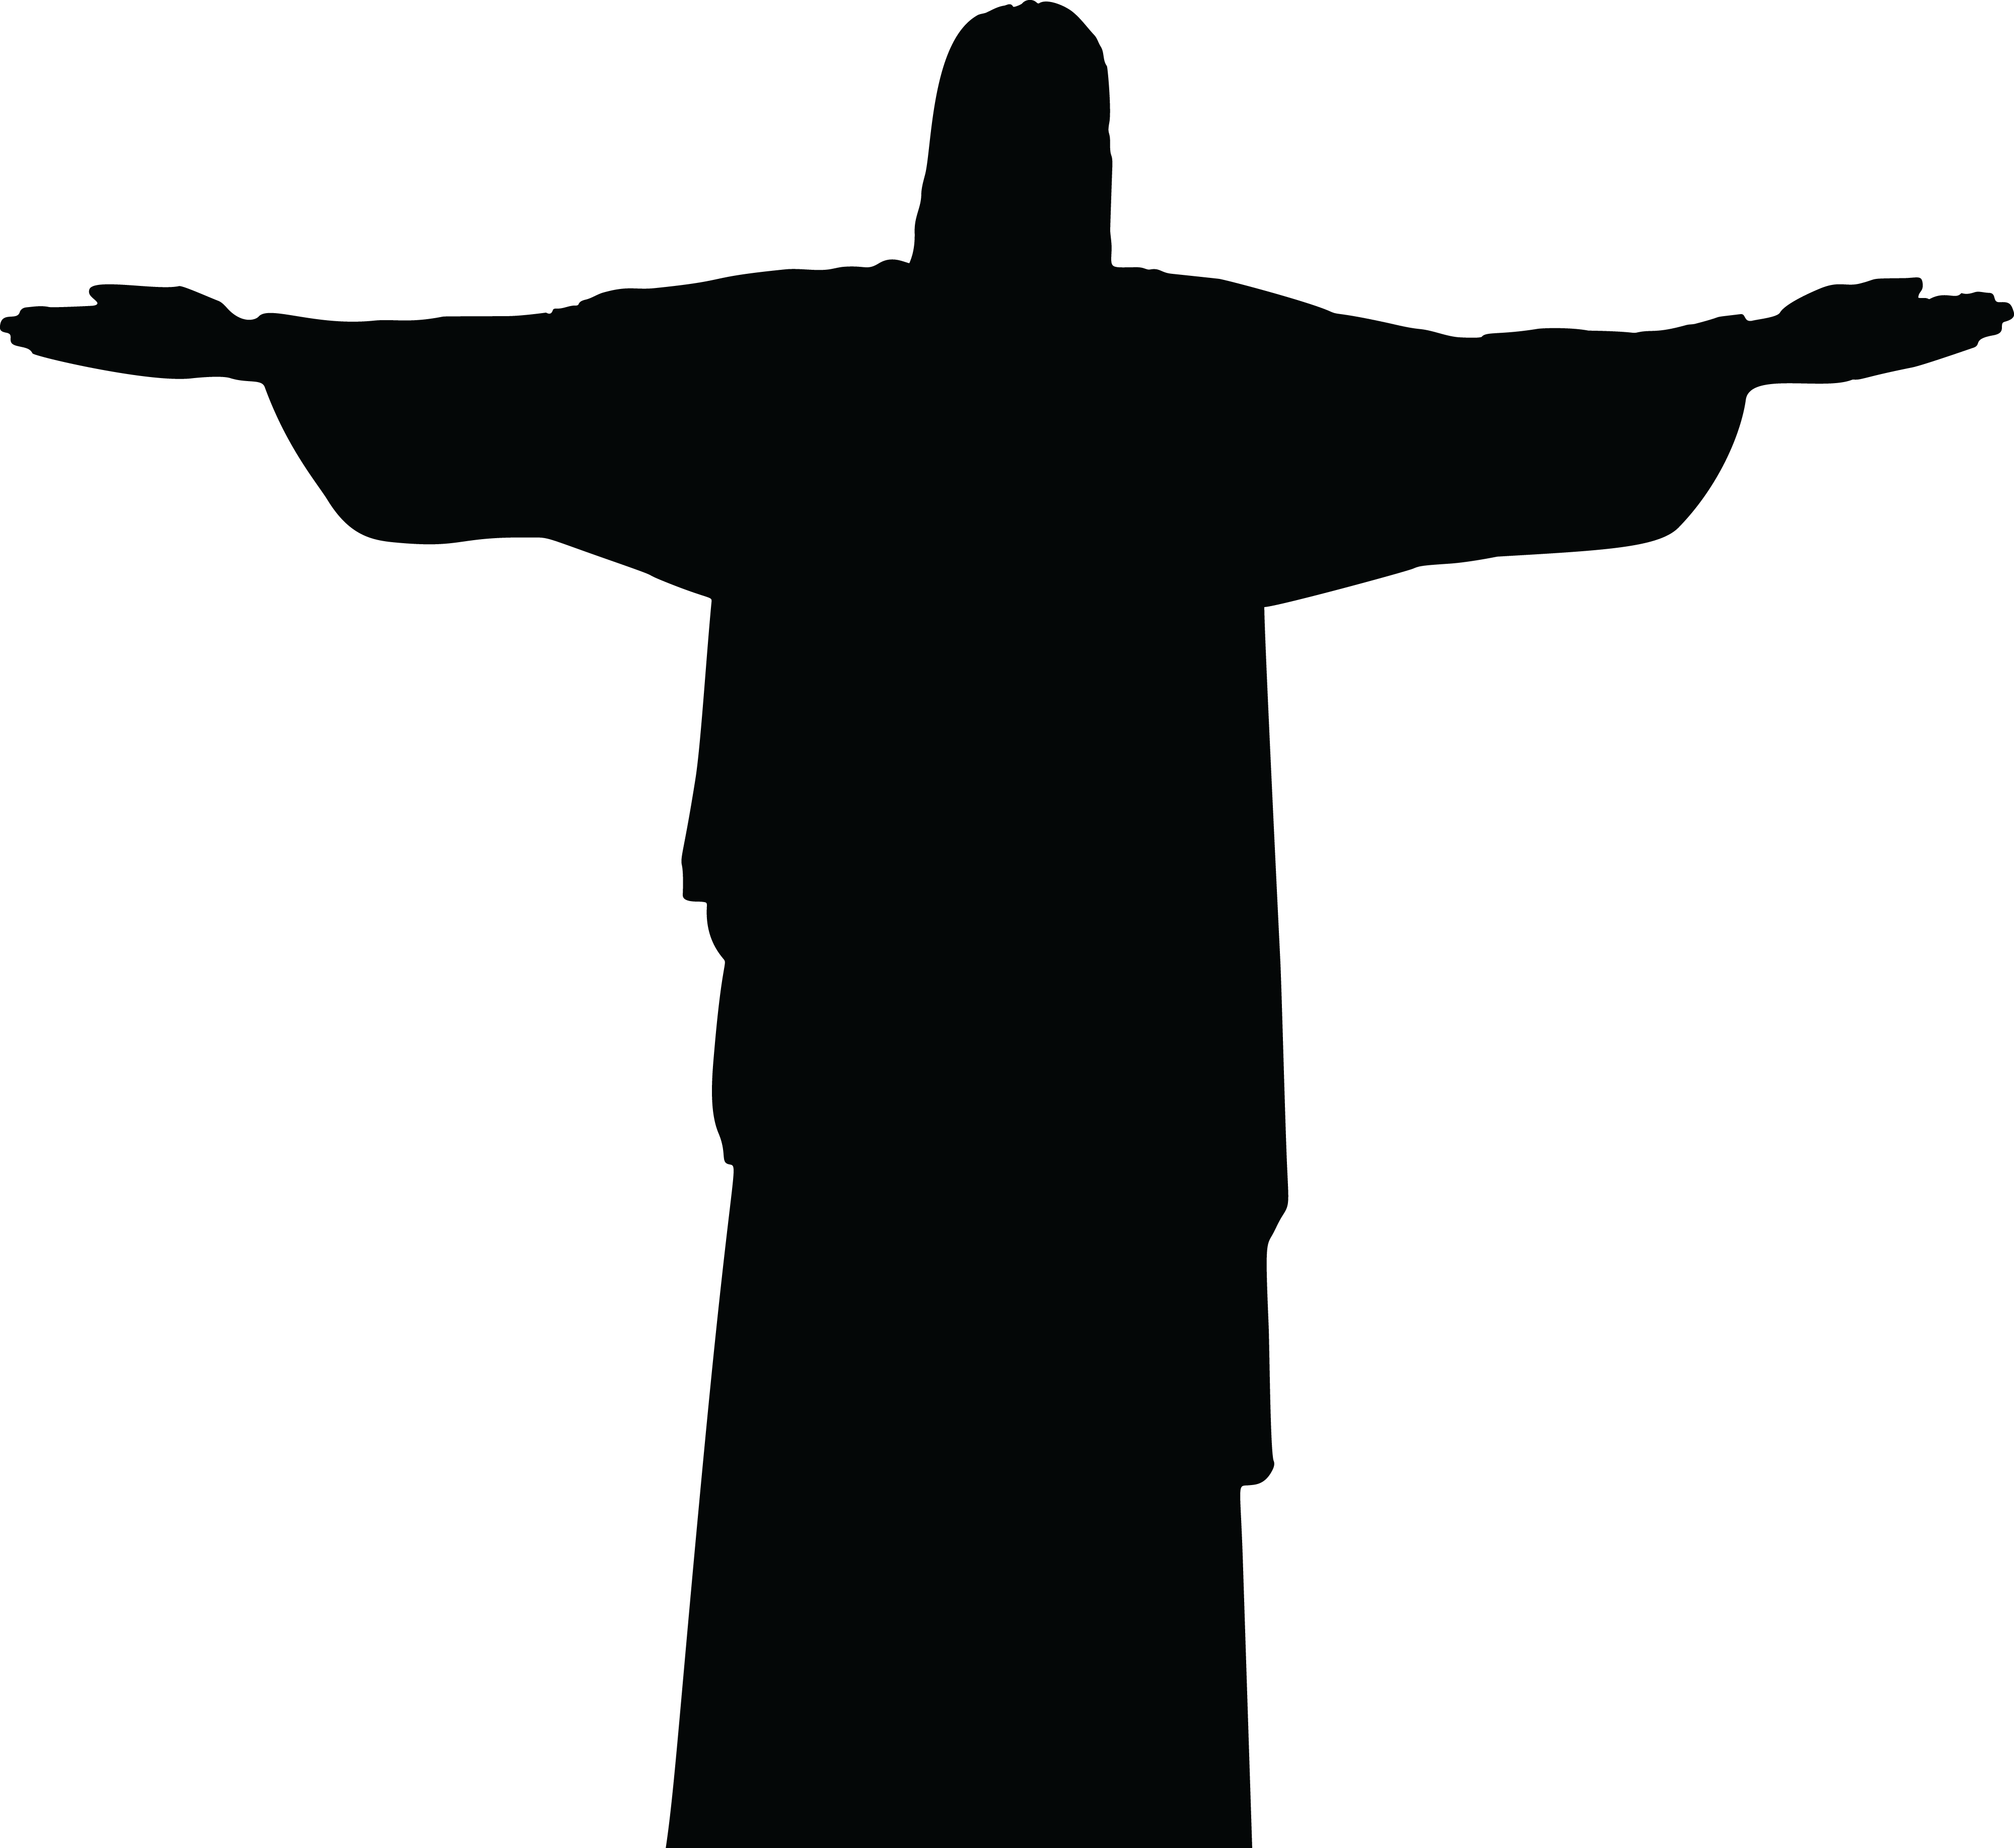 Jesus on the cross clipart images banner freeuse Jesus Carrying Cross Silhouette at GetDrawings.com | Free for ... banner freeuse